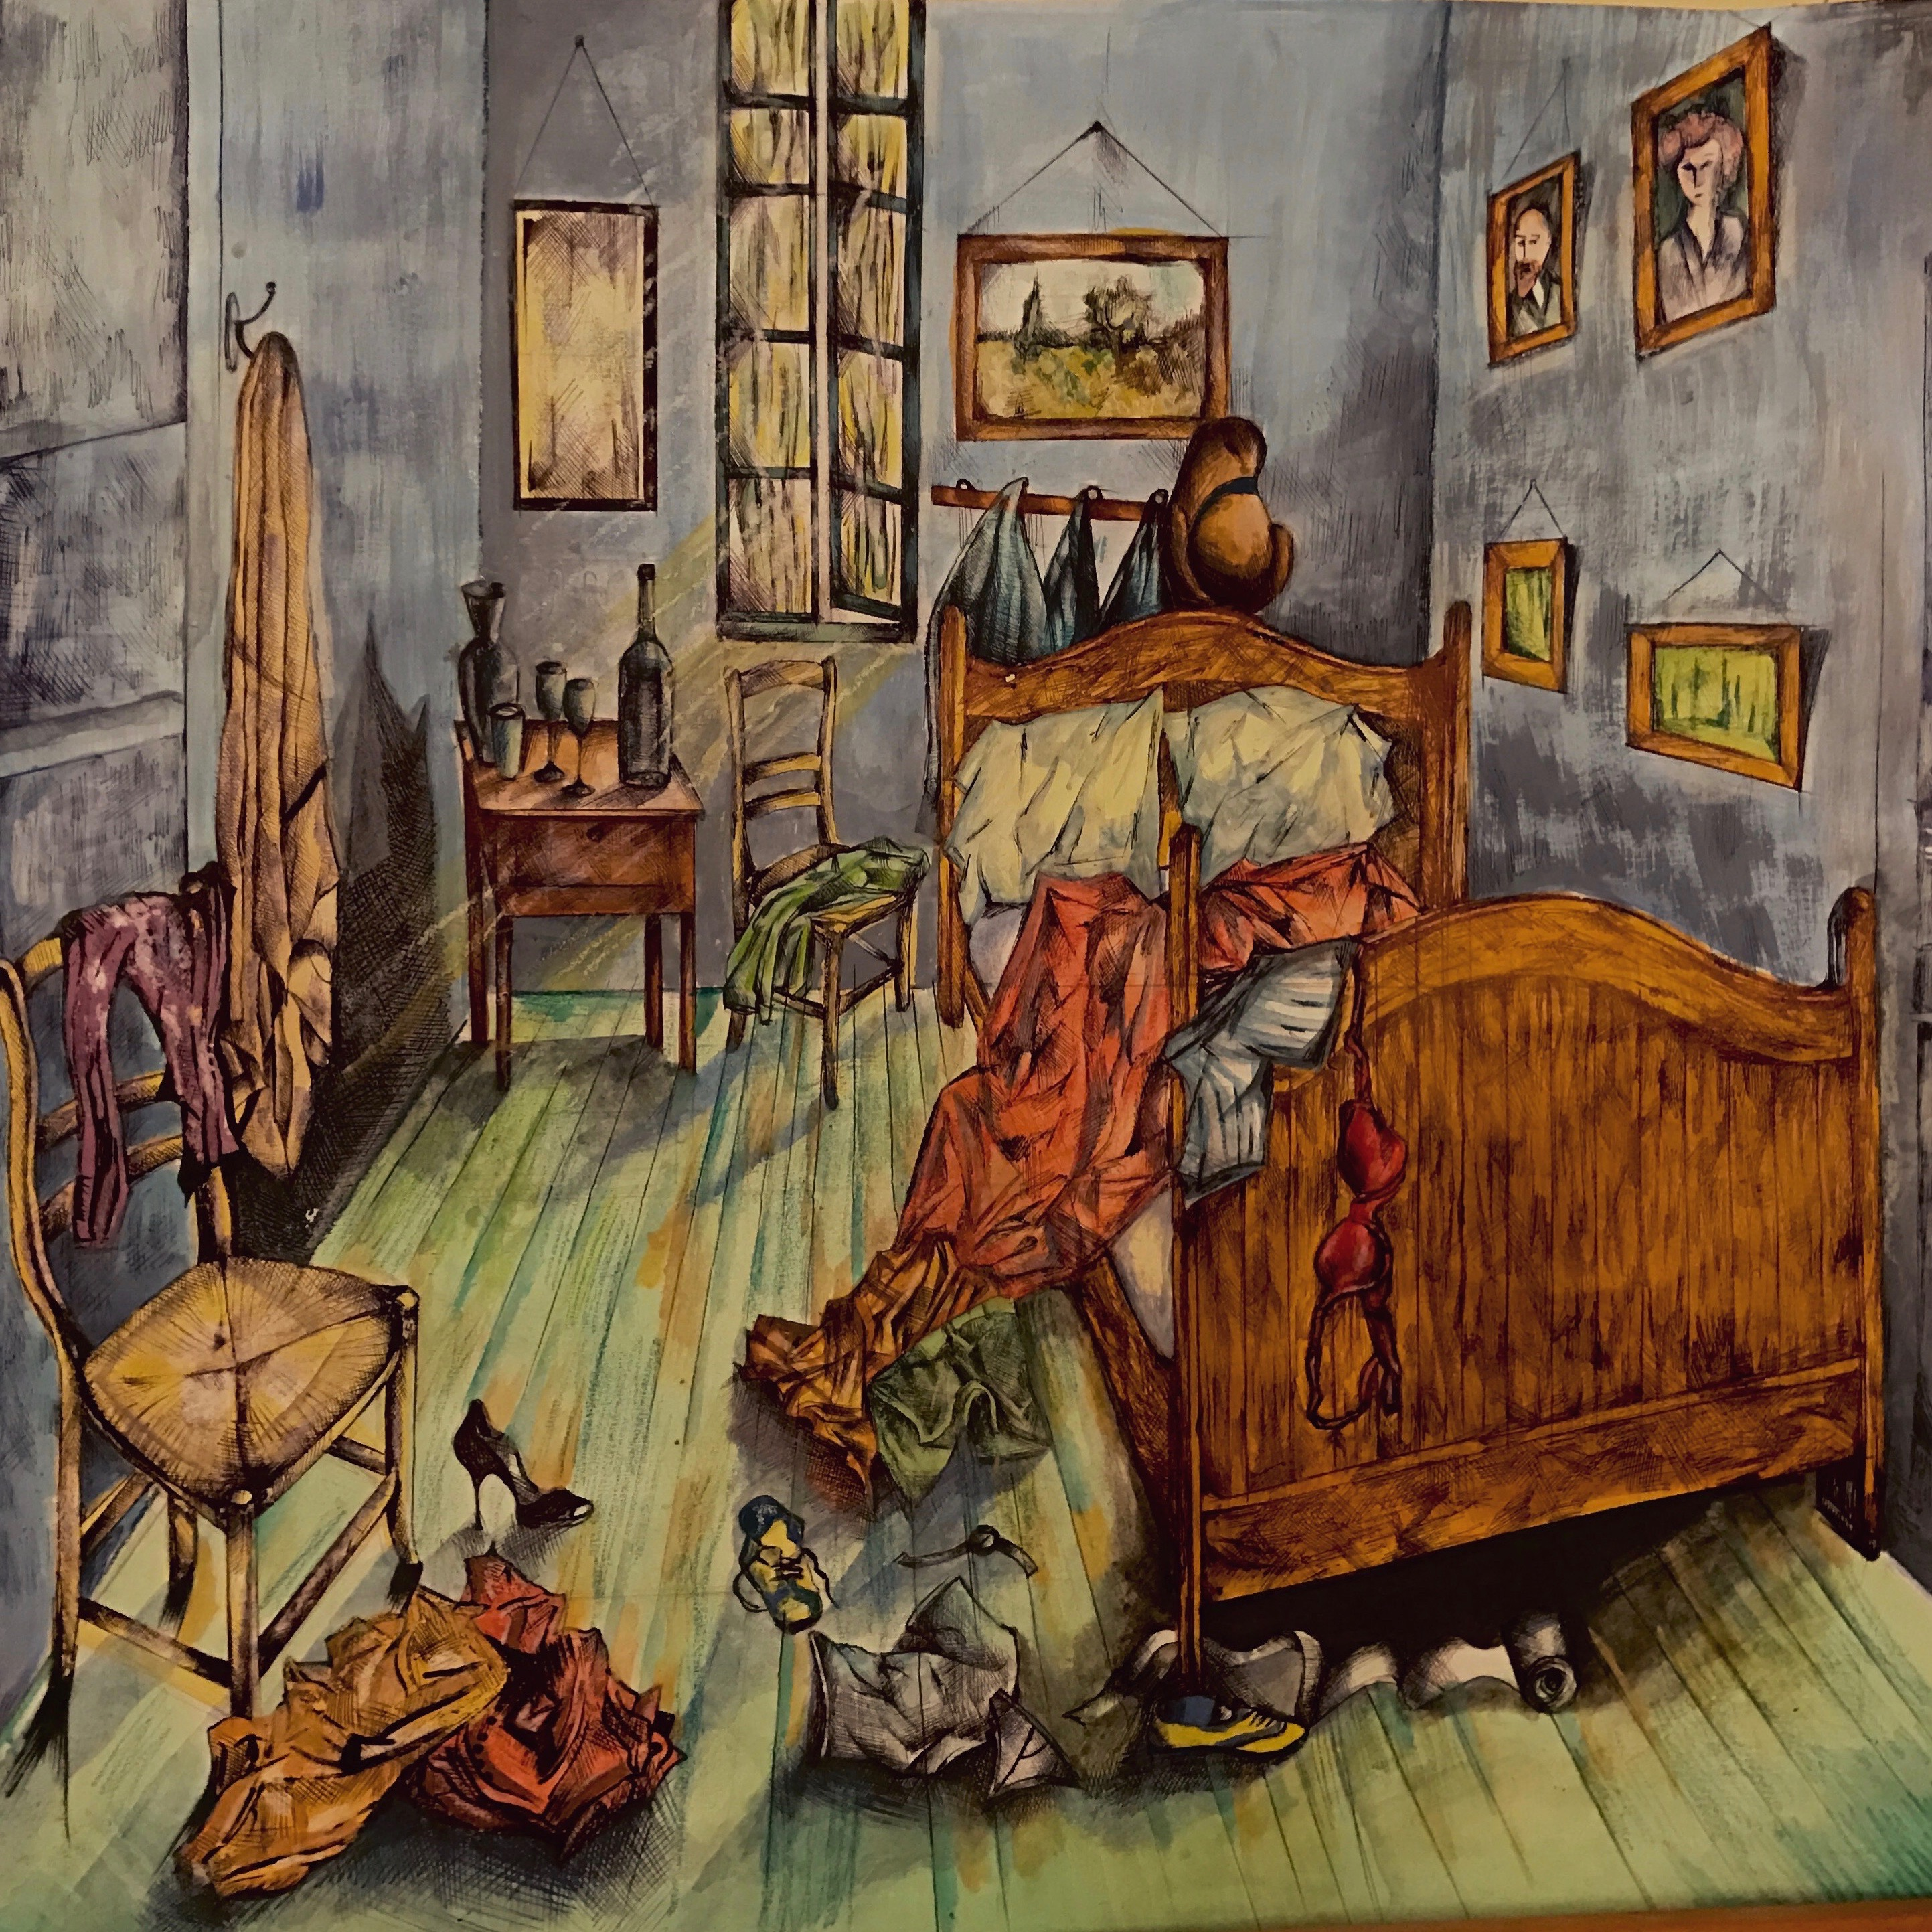 Illustration of a messy bedroom with clothes and shows strewn across the room. The bed is not made and the walls are light blue with framed pictures fixed on the wall. There is also an empty bottle of wine on the bedside table.